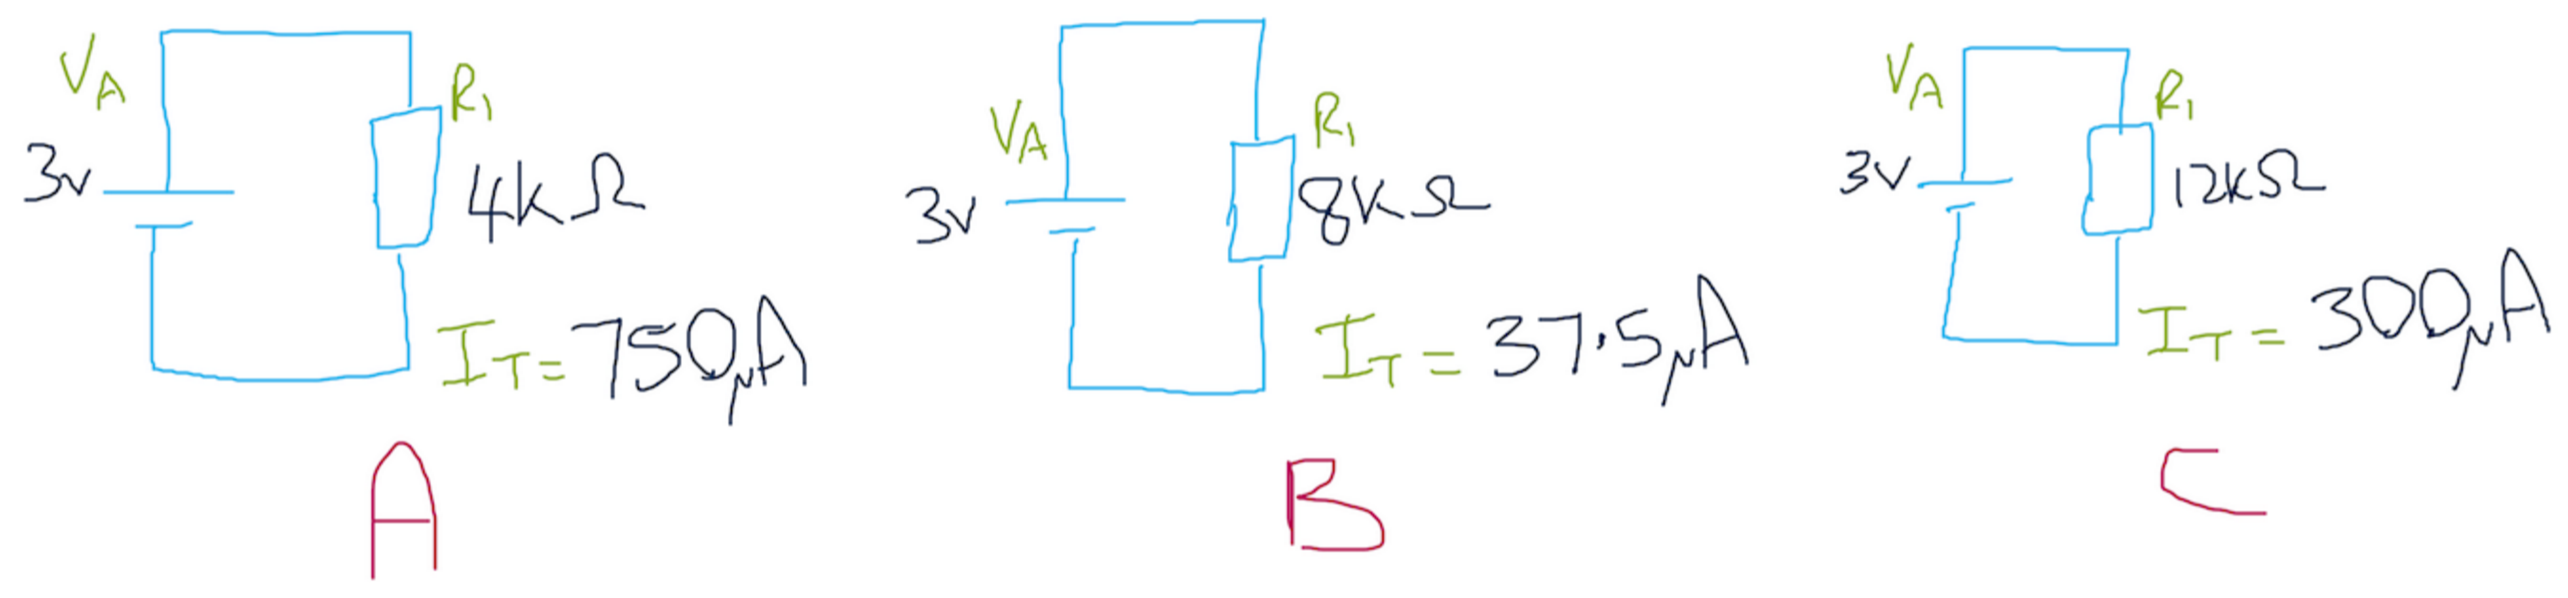 Electronics Fundamentals Brads Electronic Projects Voltage Divider Tutorials Which Of These Circuits Shows The Correct Amount Current